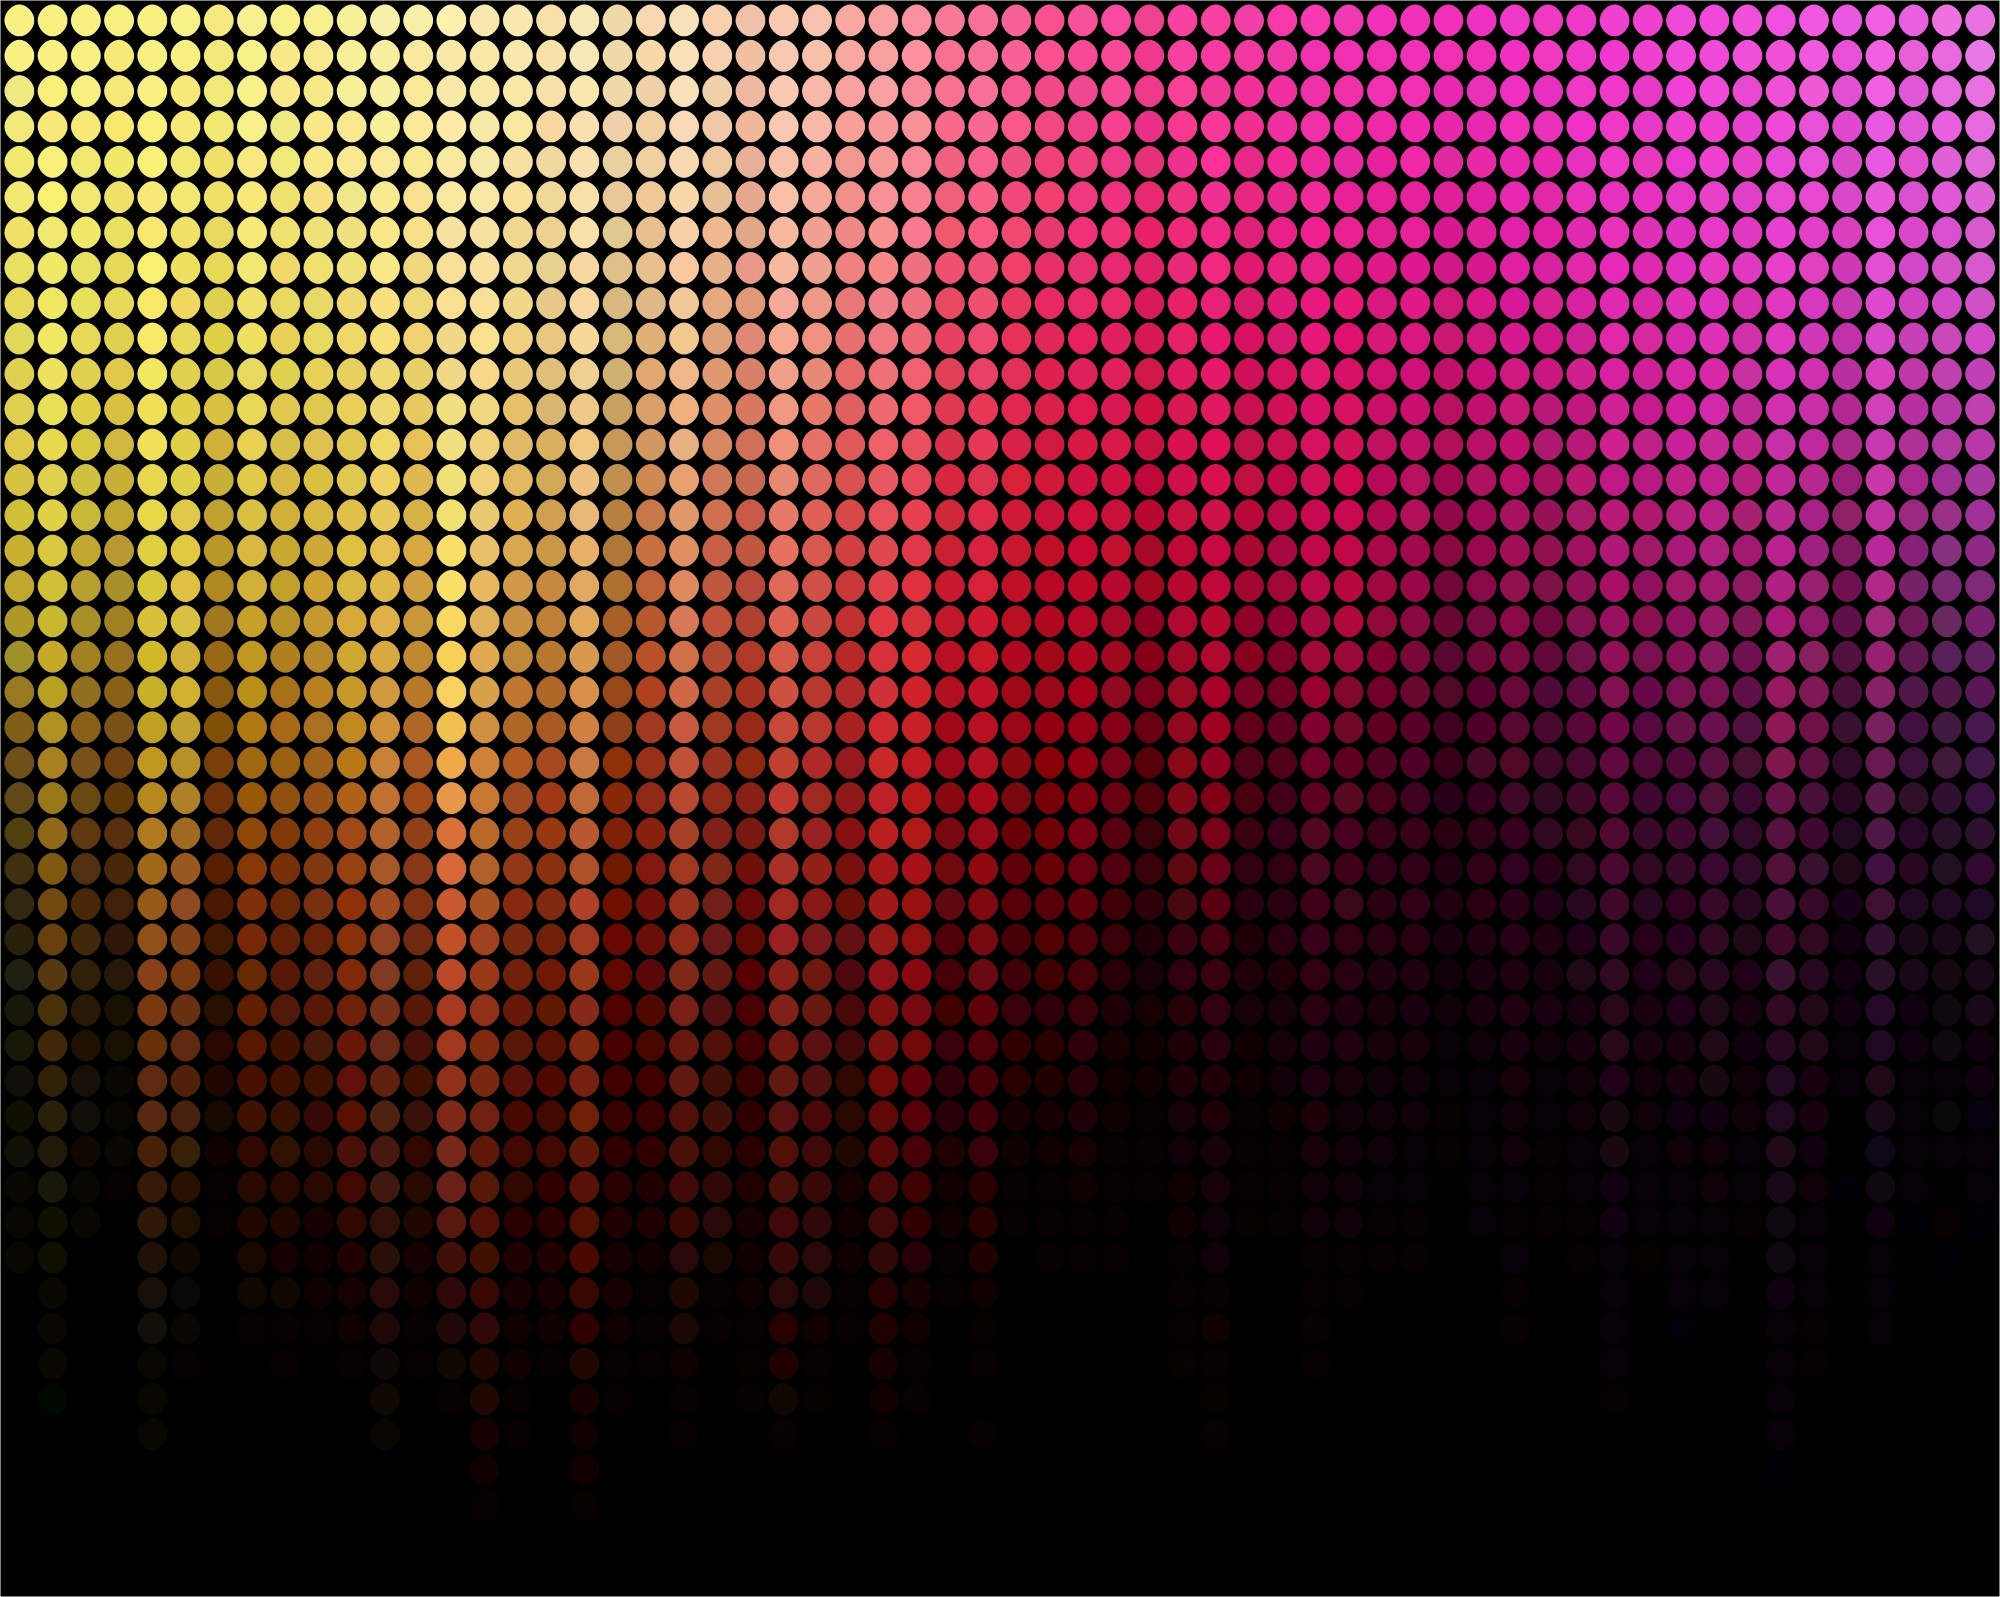 neon color background 183��